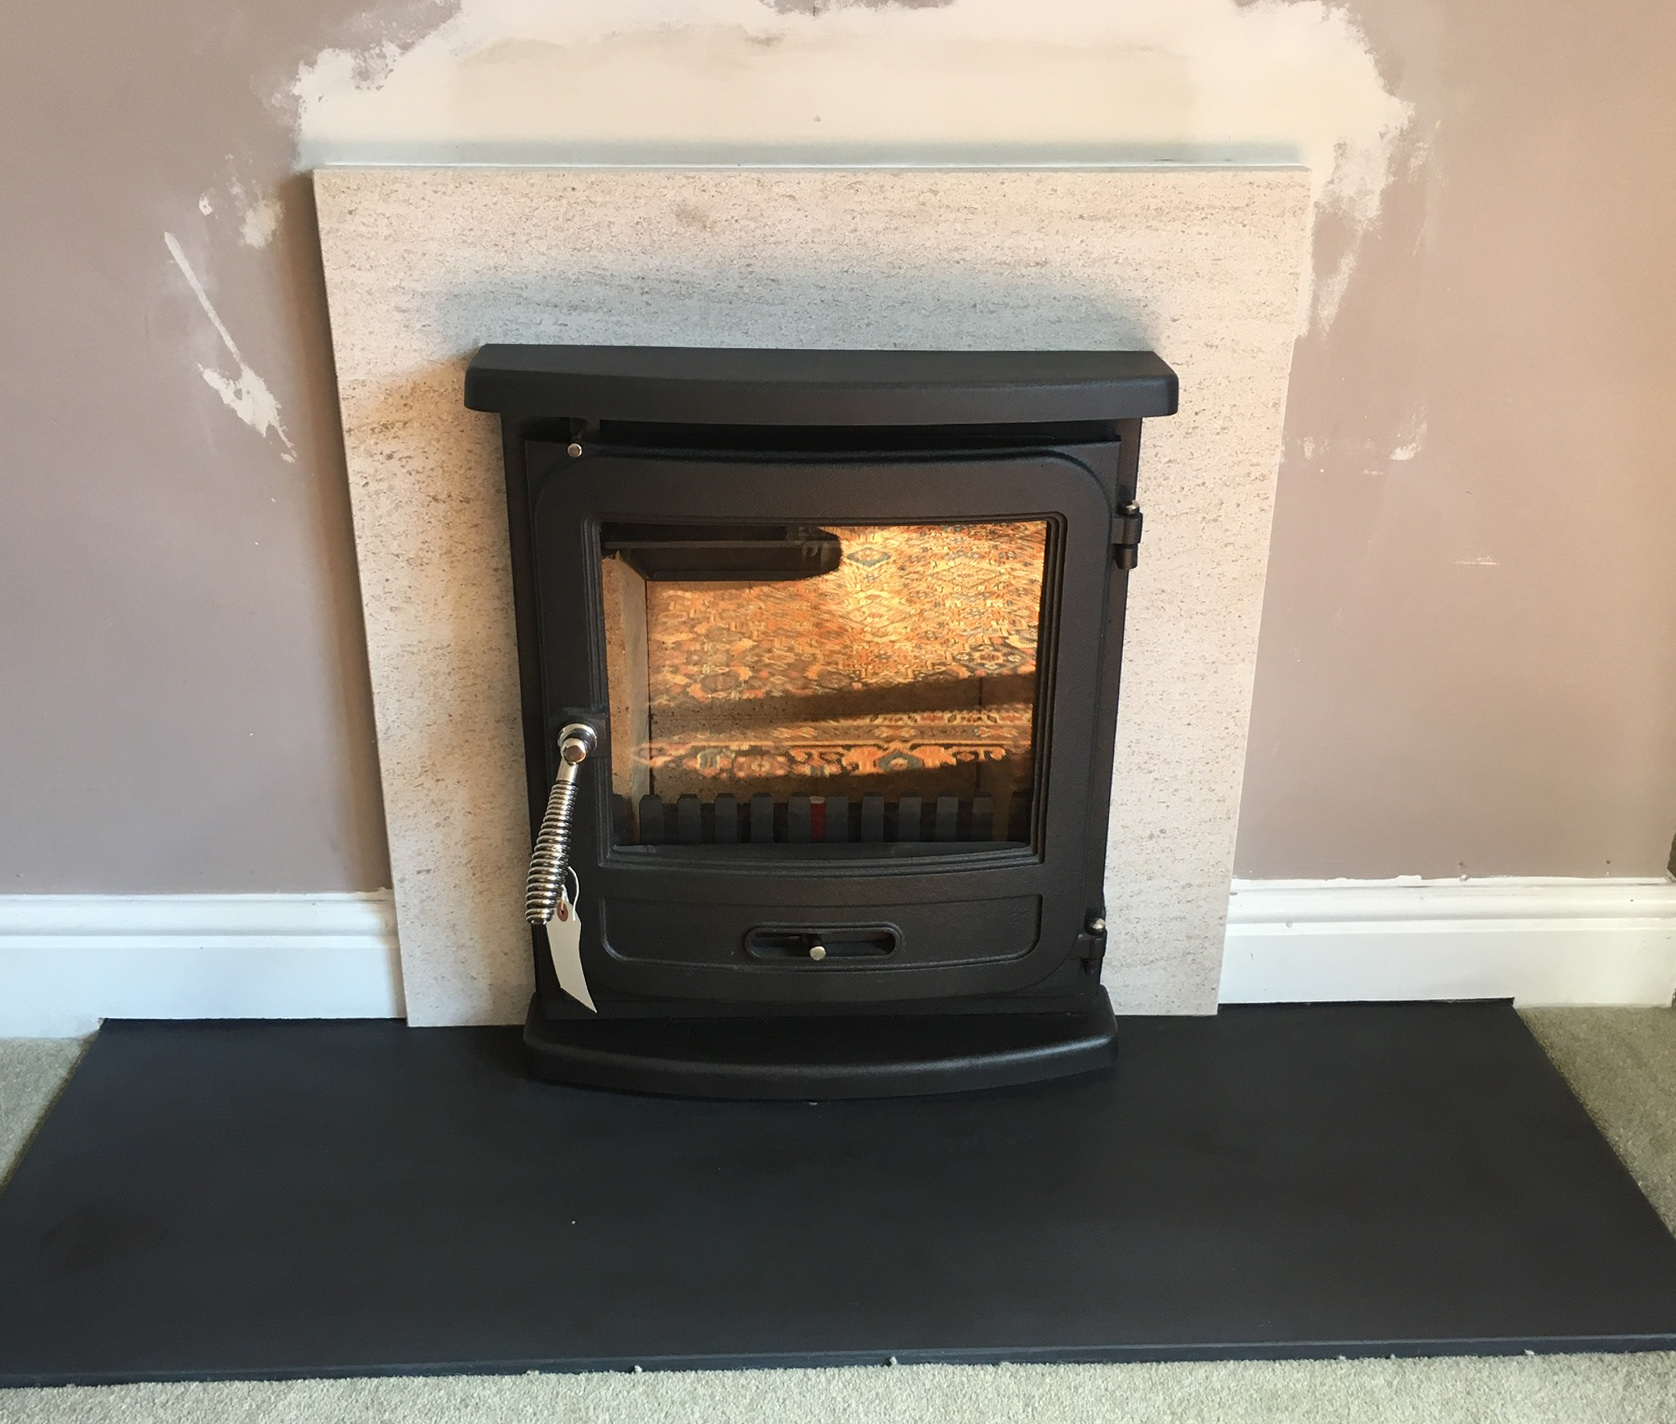 Inset stove